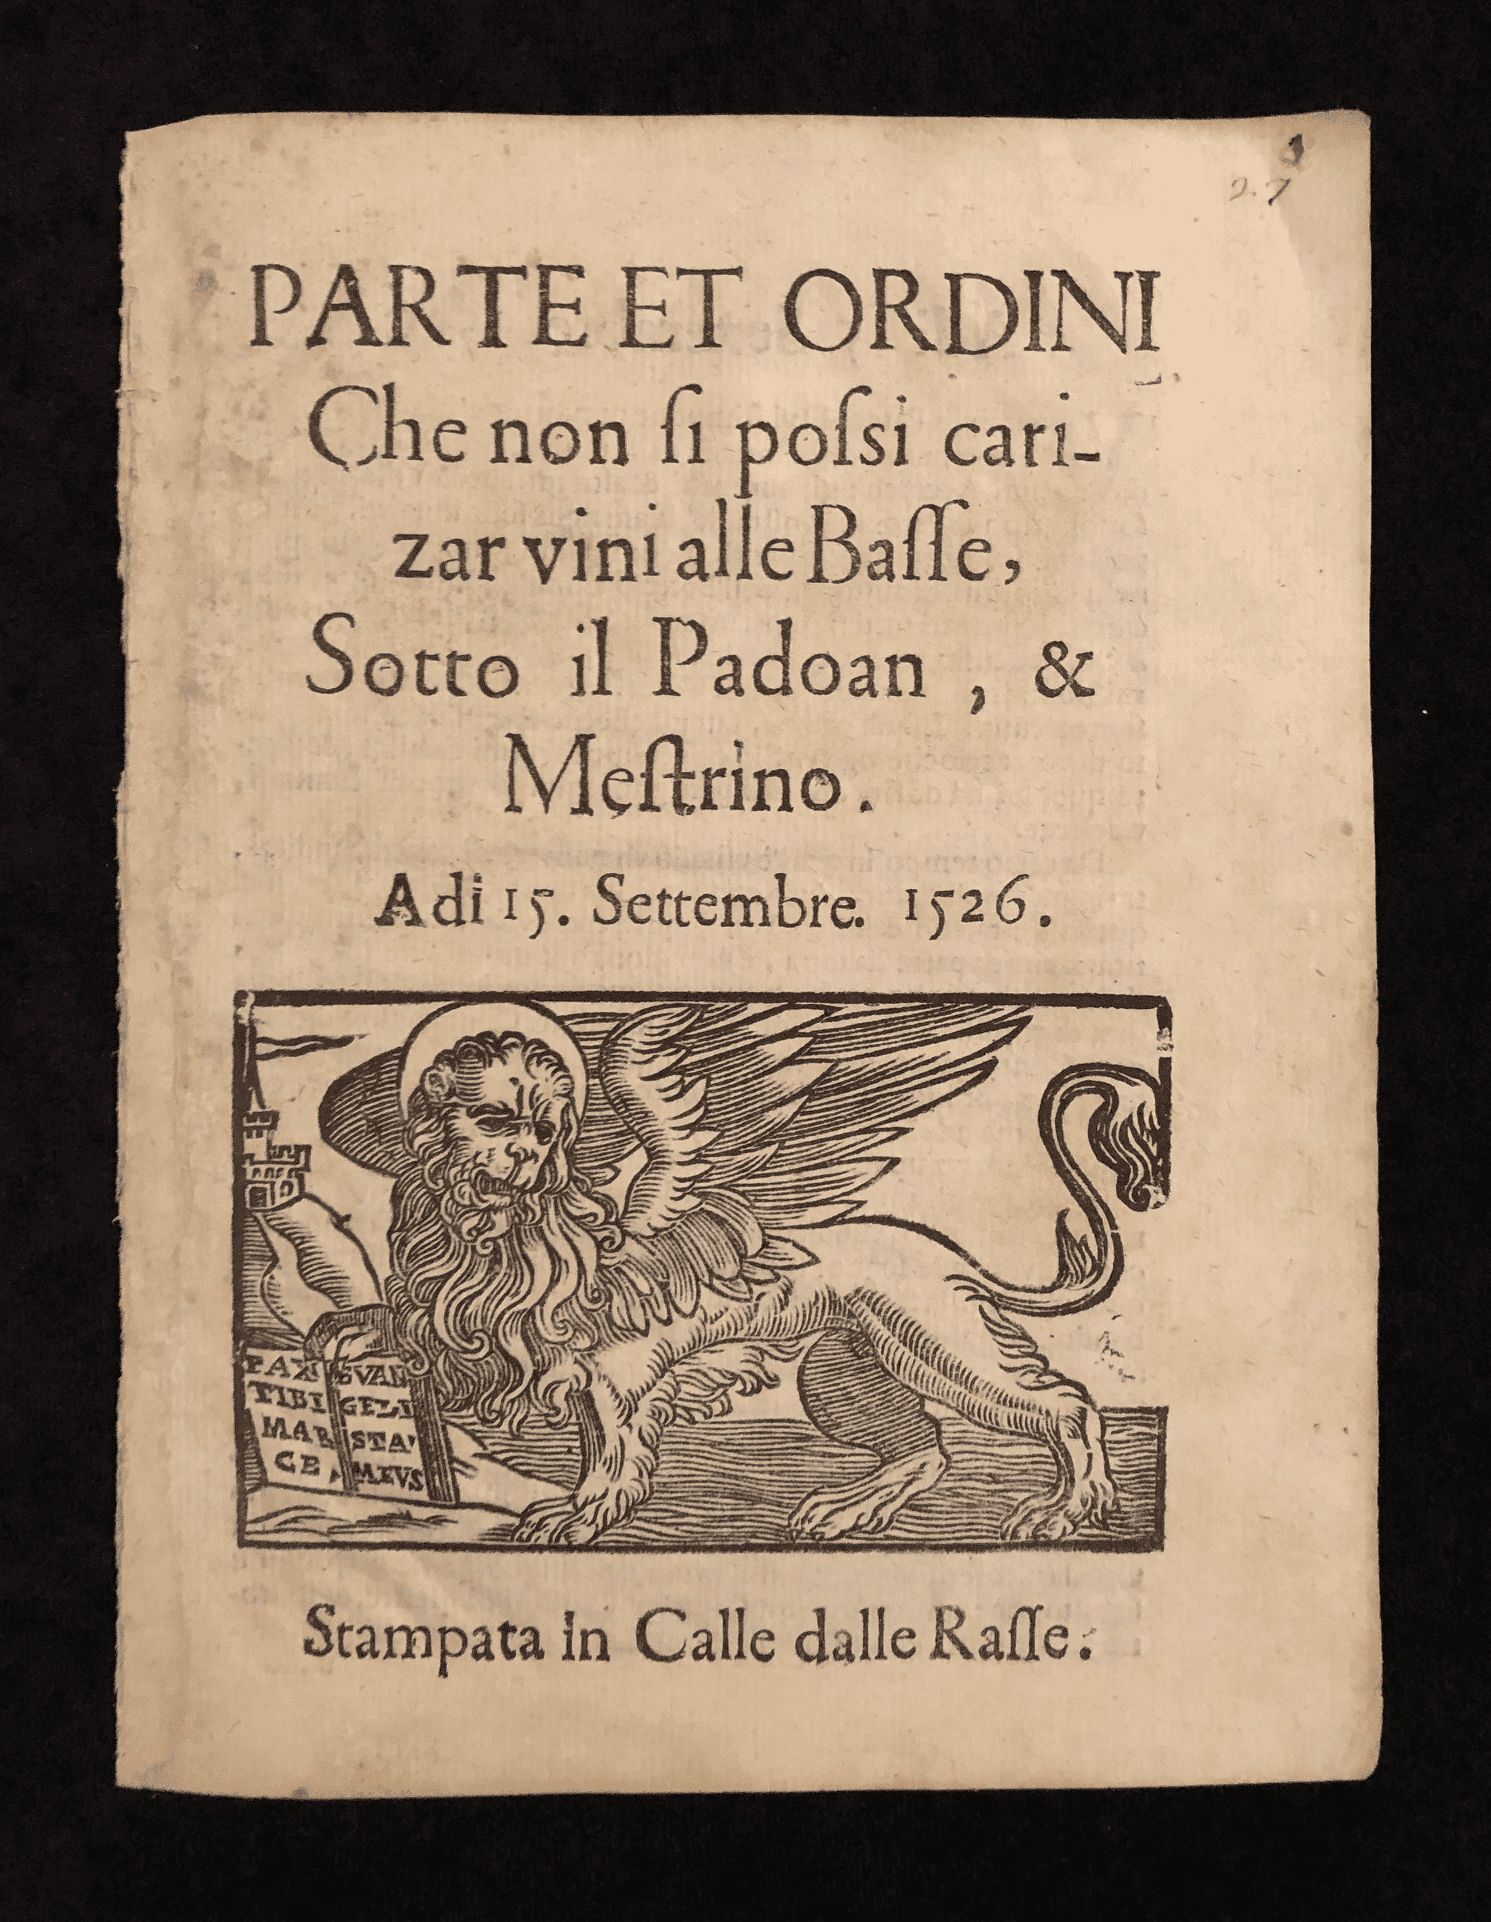 Parte et Ordini- Text of an order dictating how wine for sale must be transported through Italy in the early 16th century